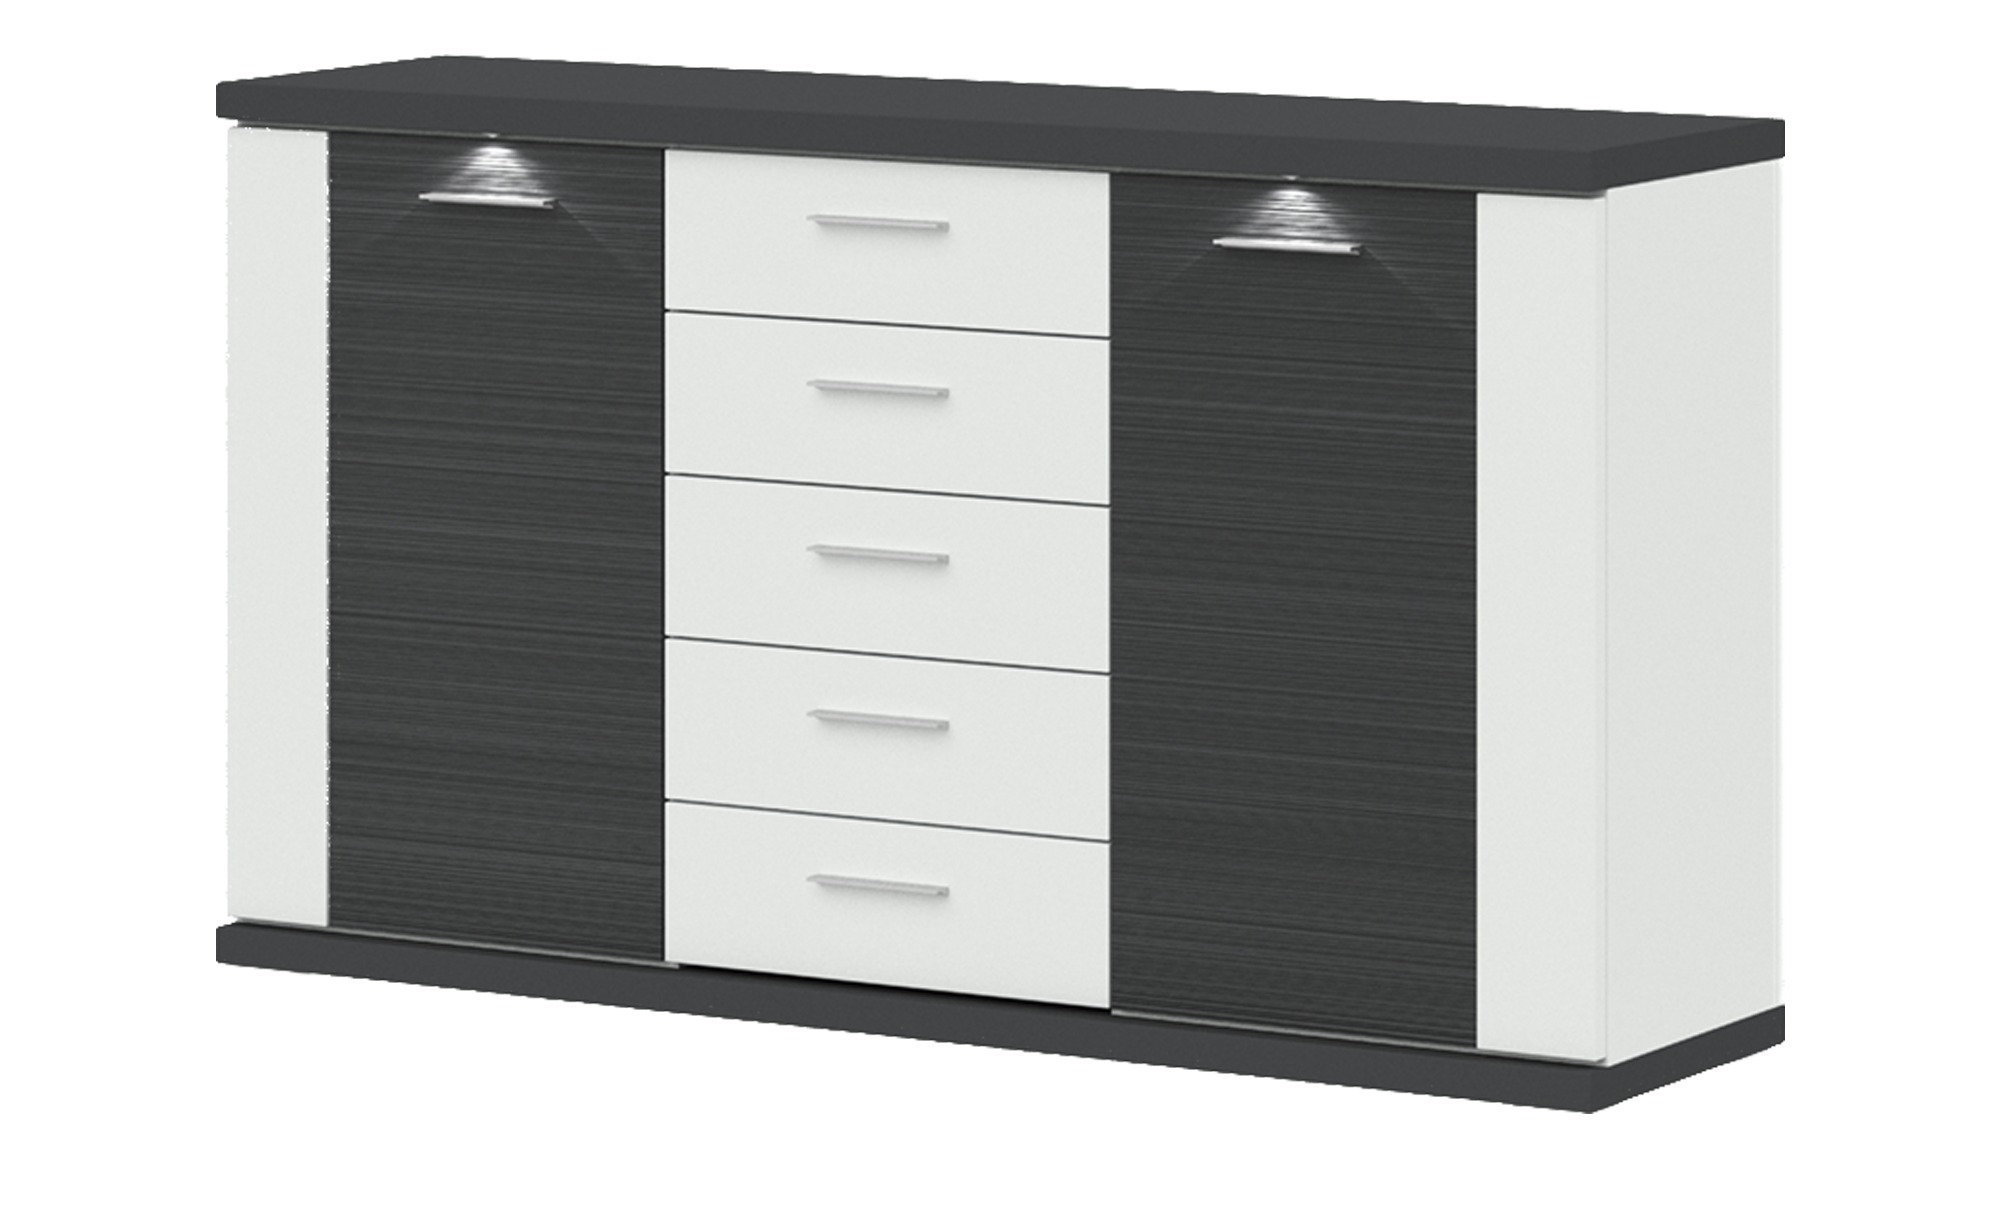 uno sideboard titan breite 156 cm h he 91 cm online kaufen bei woonio. Black Bedroom Furniture Sets. Home Design Ideas